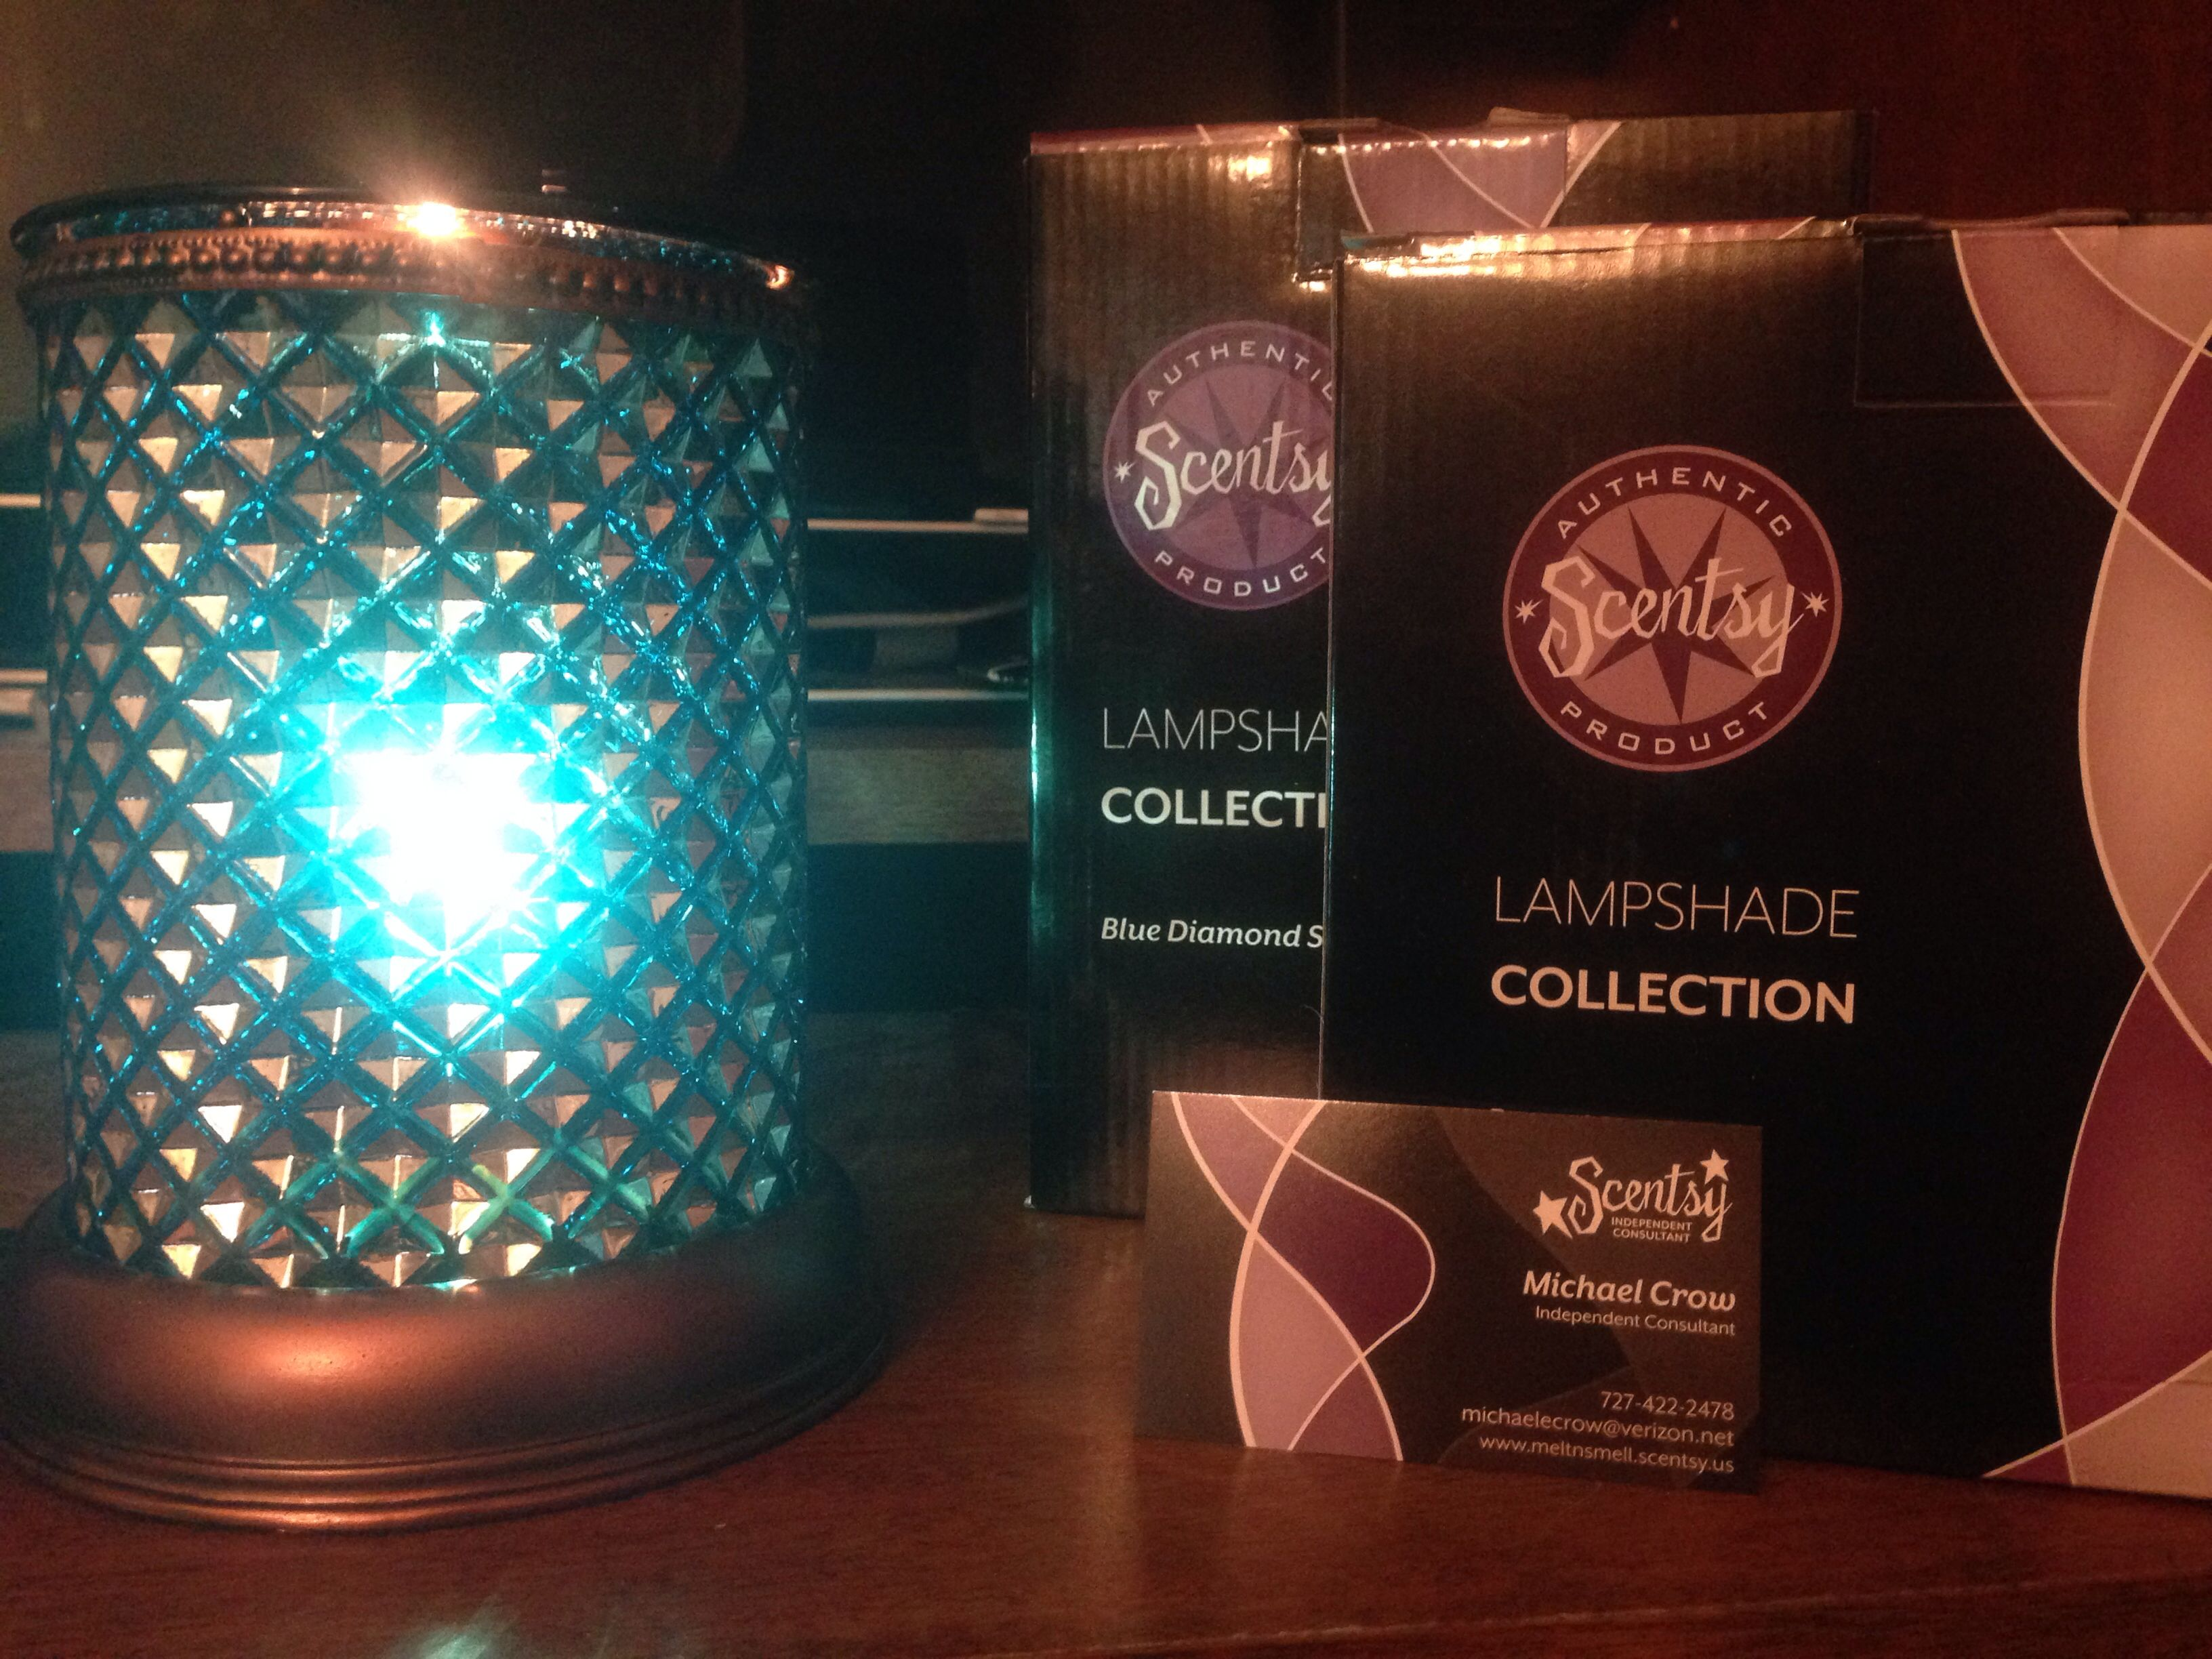 The Blue Diamond Lampshade Warmer